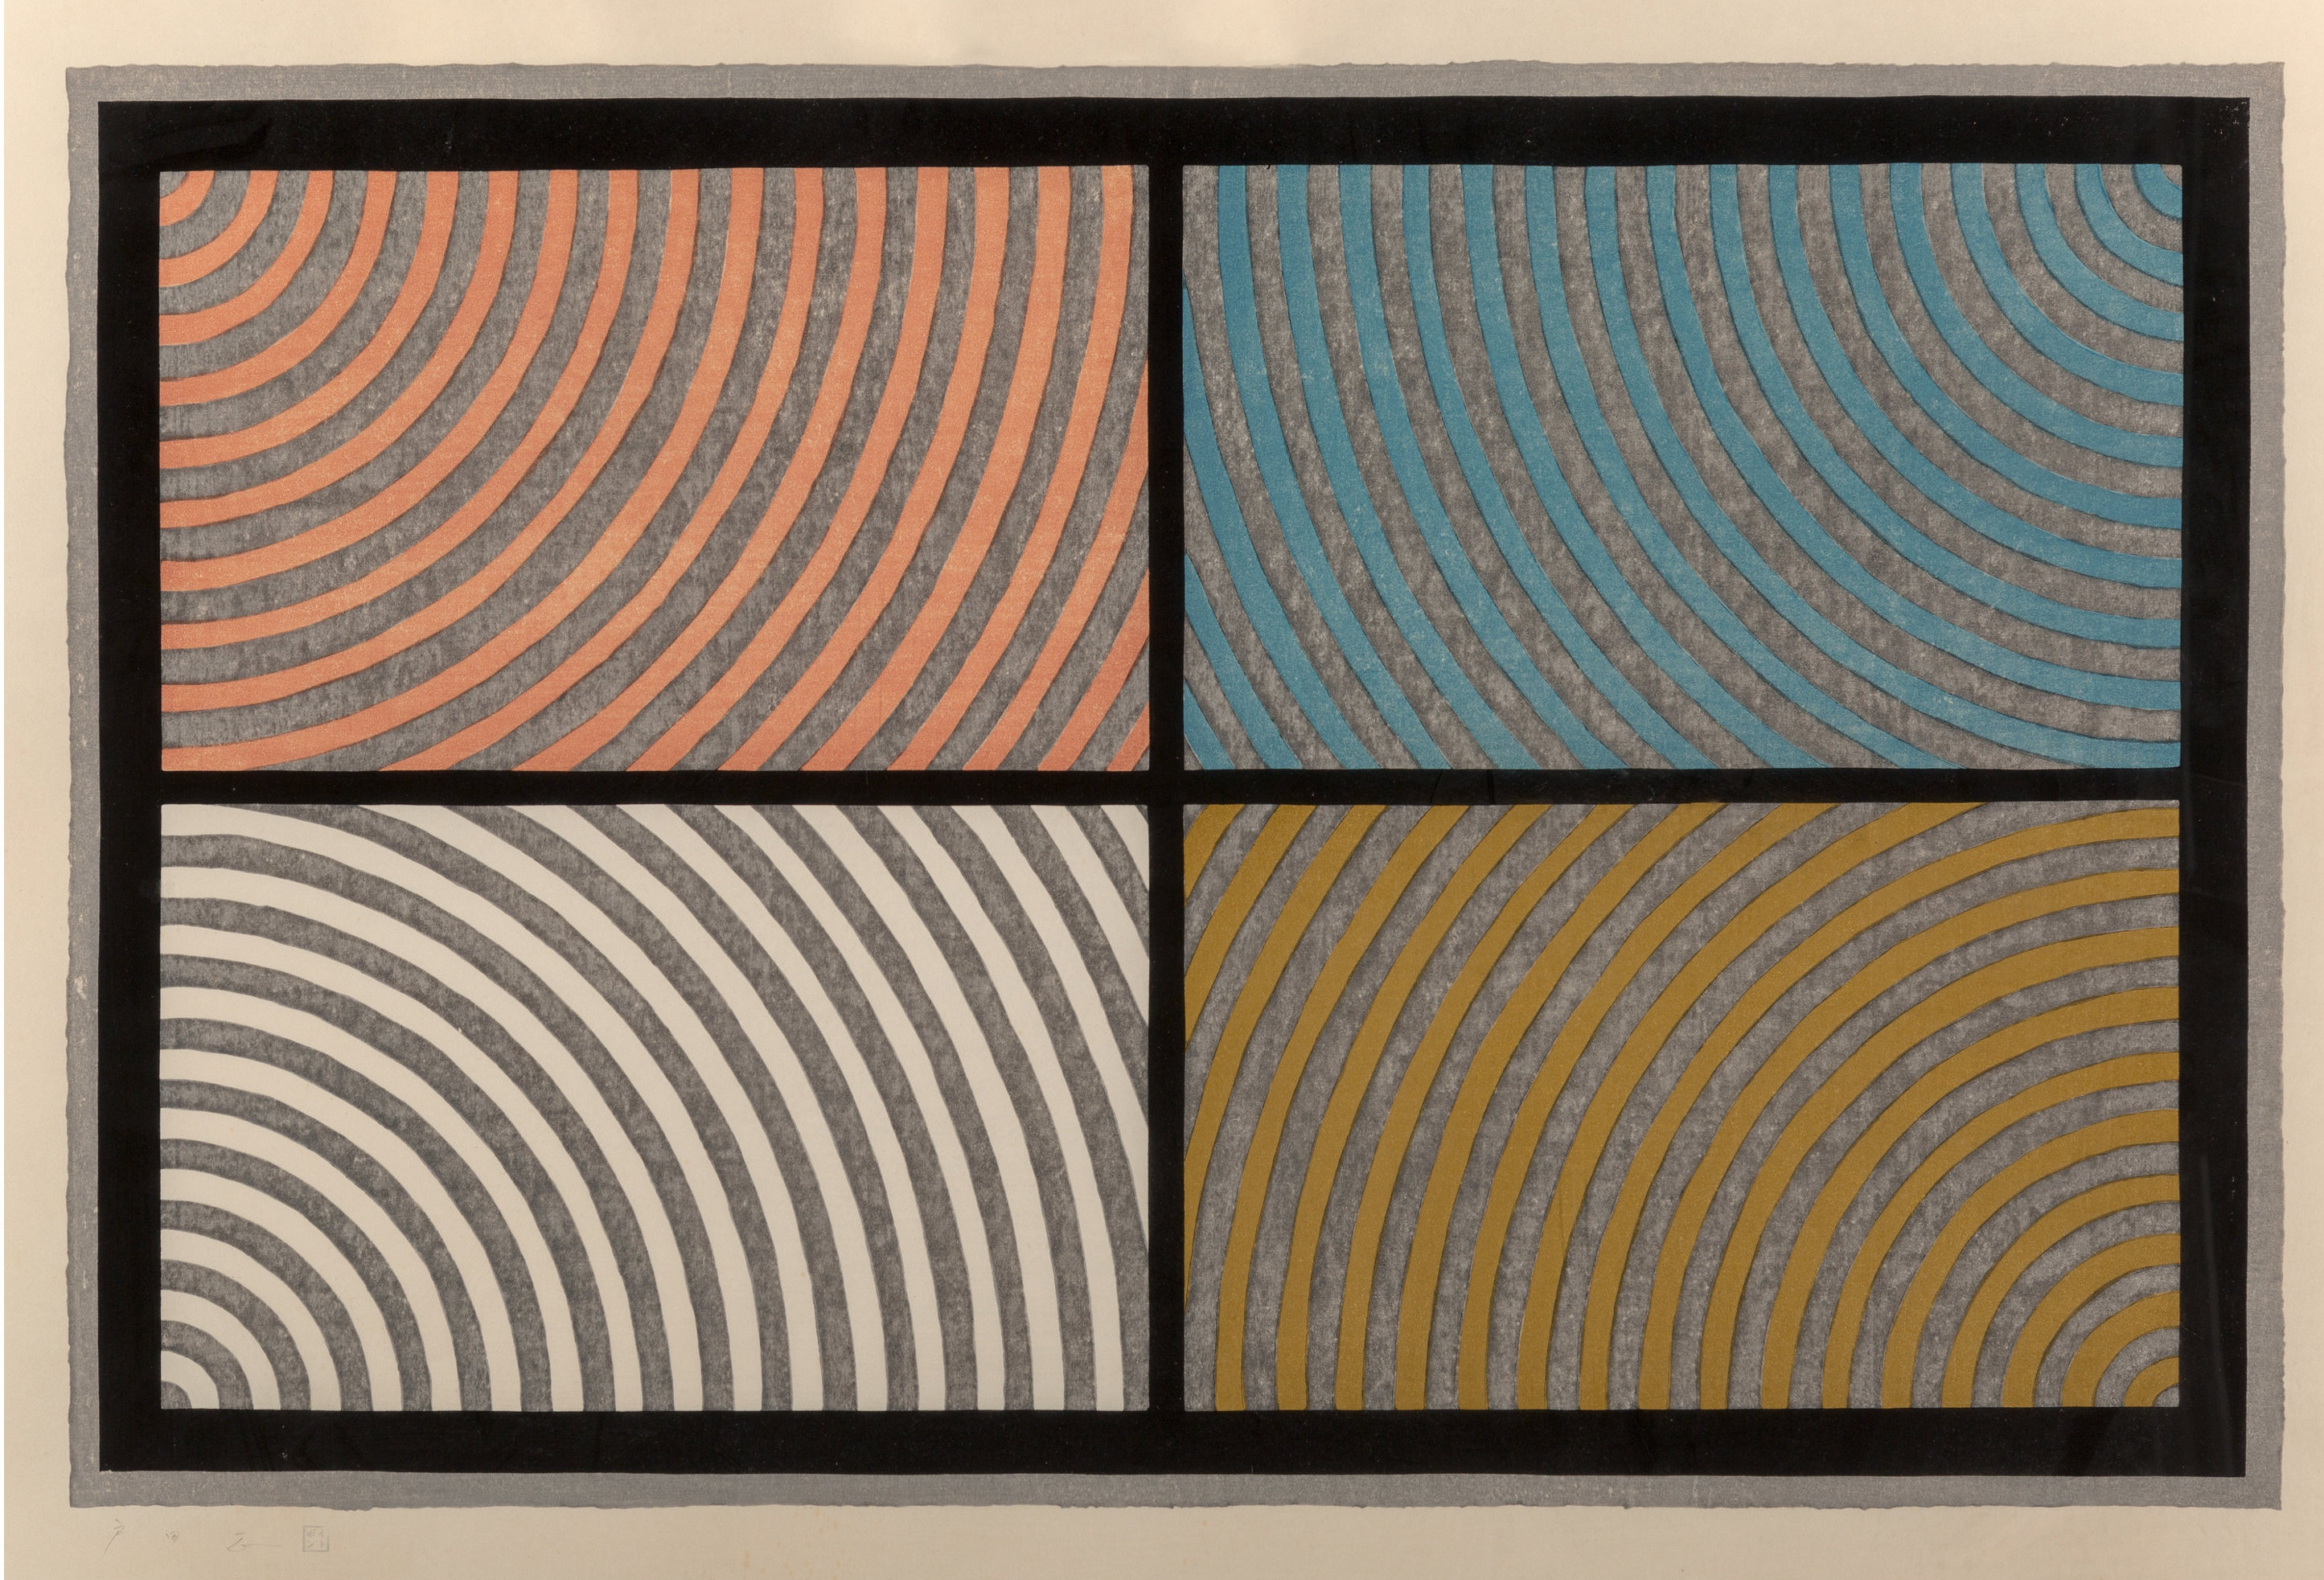 2186 Lewitt Arcs from Four Corners